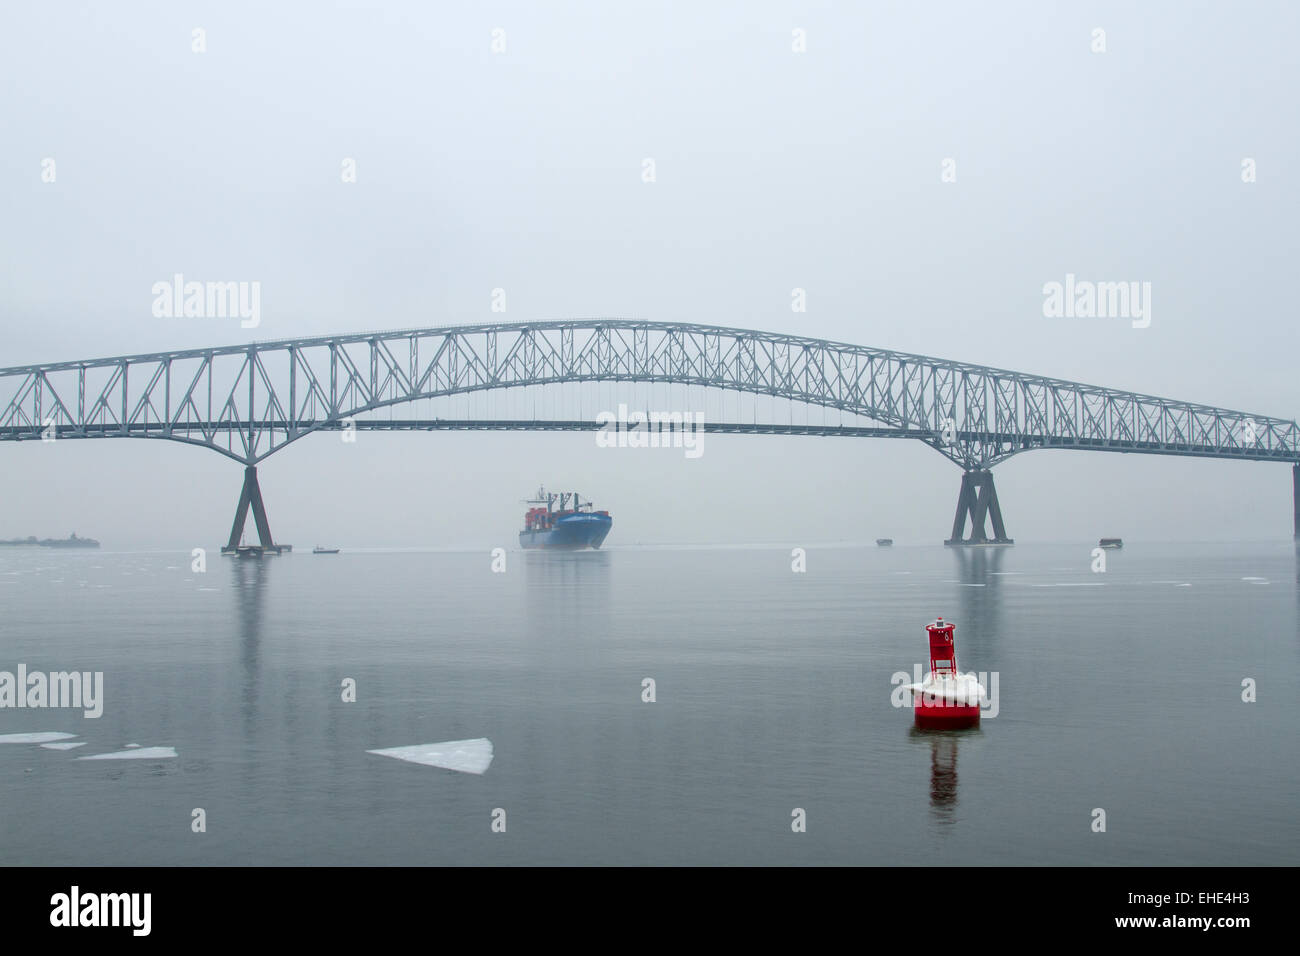 A Ship coming under the Francis Scott Key Bridge in Baltimore with ice in the harbor. Stock Photo